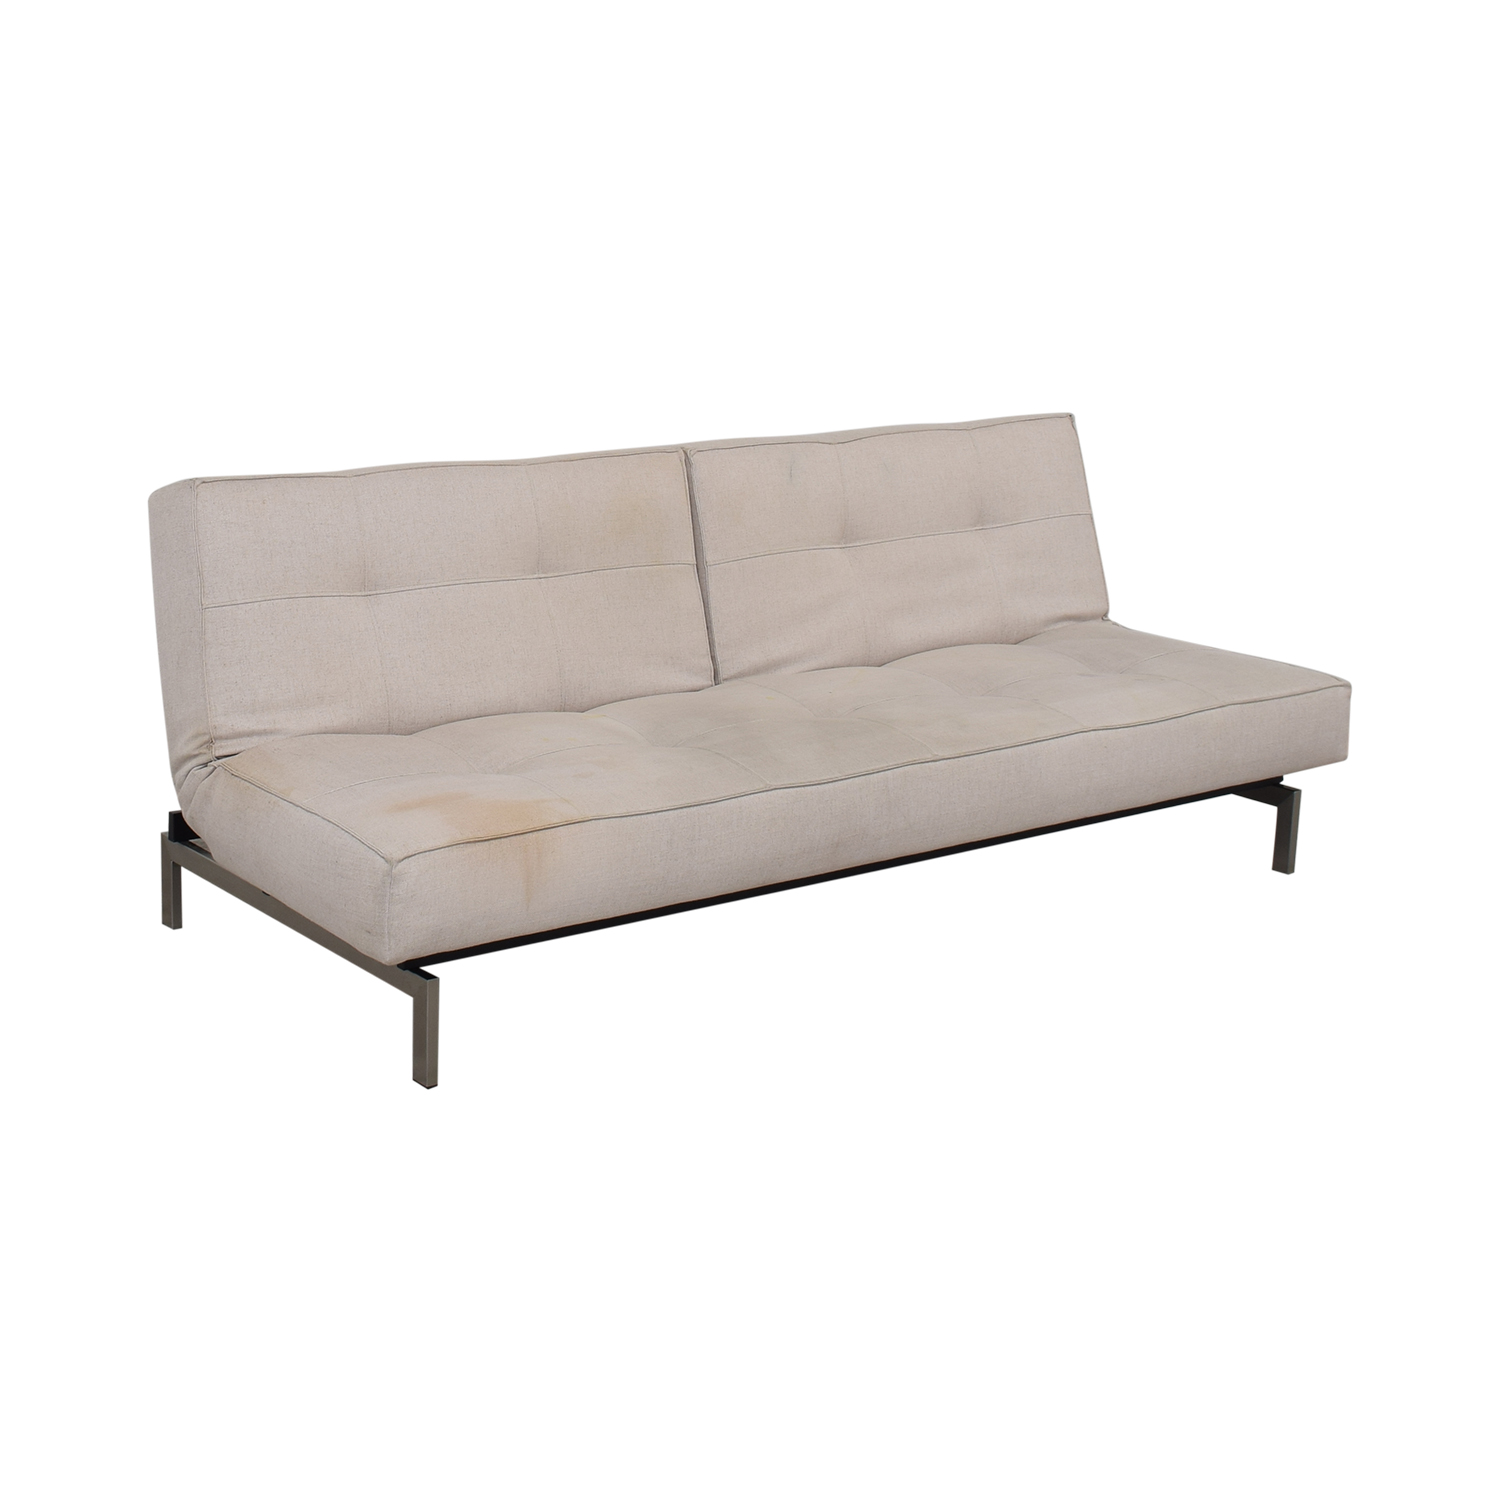 ABC Carpet & Home ABC Carpet & Home Cobble Hill Sofa Classic Sofas